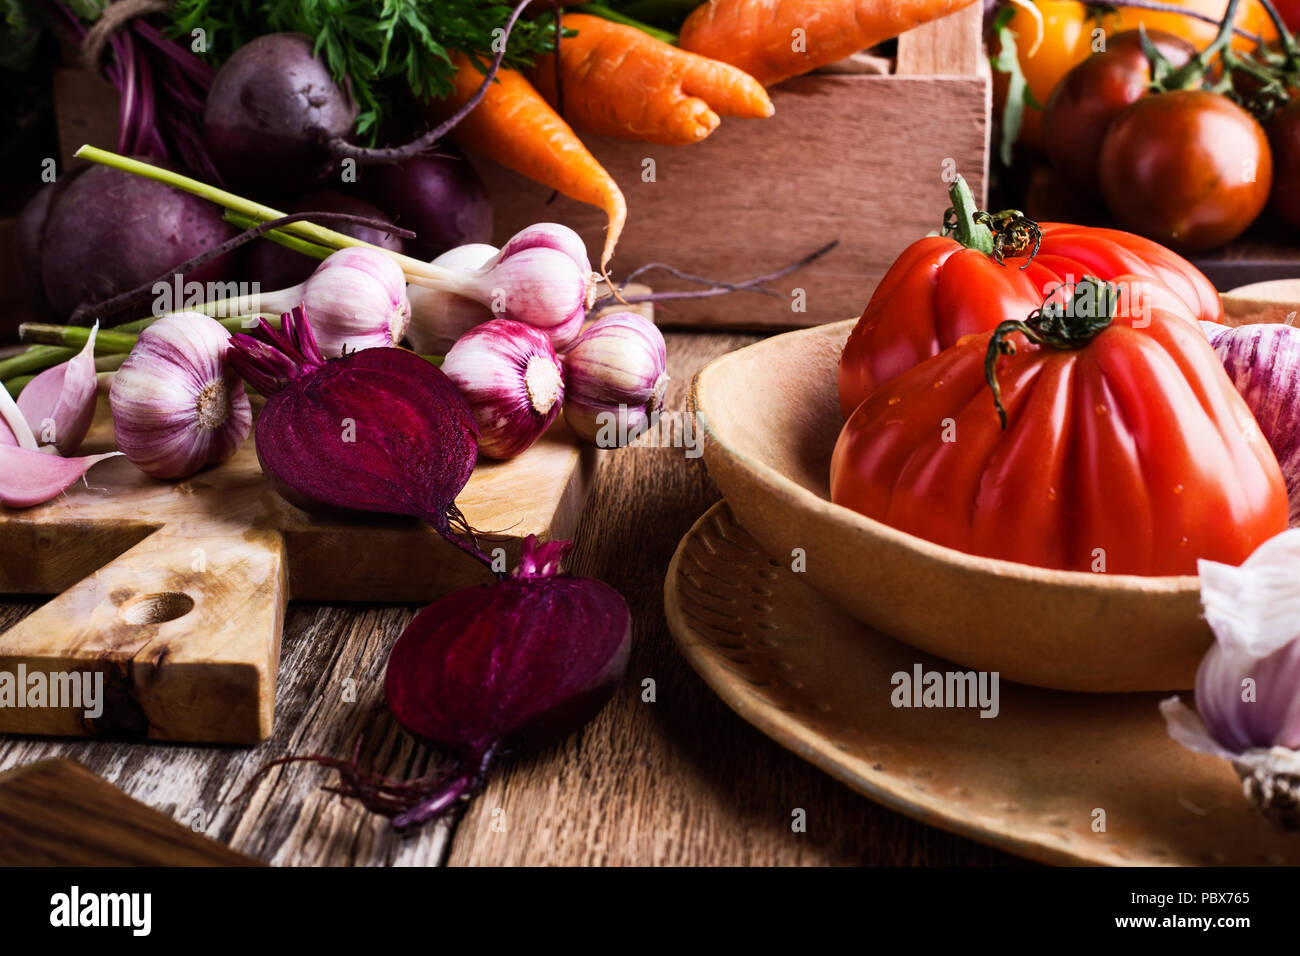 Fresh organic homegrown colofrul vegetables on wooden rustic table, harvest time - Stock Image